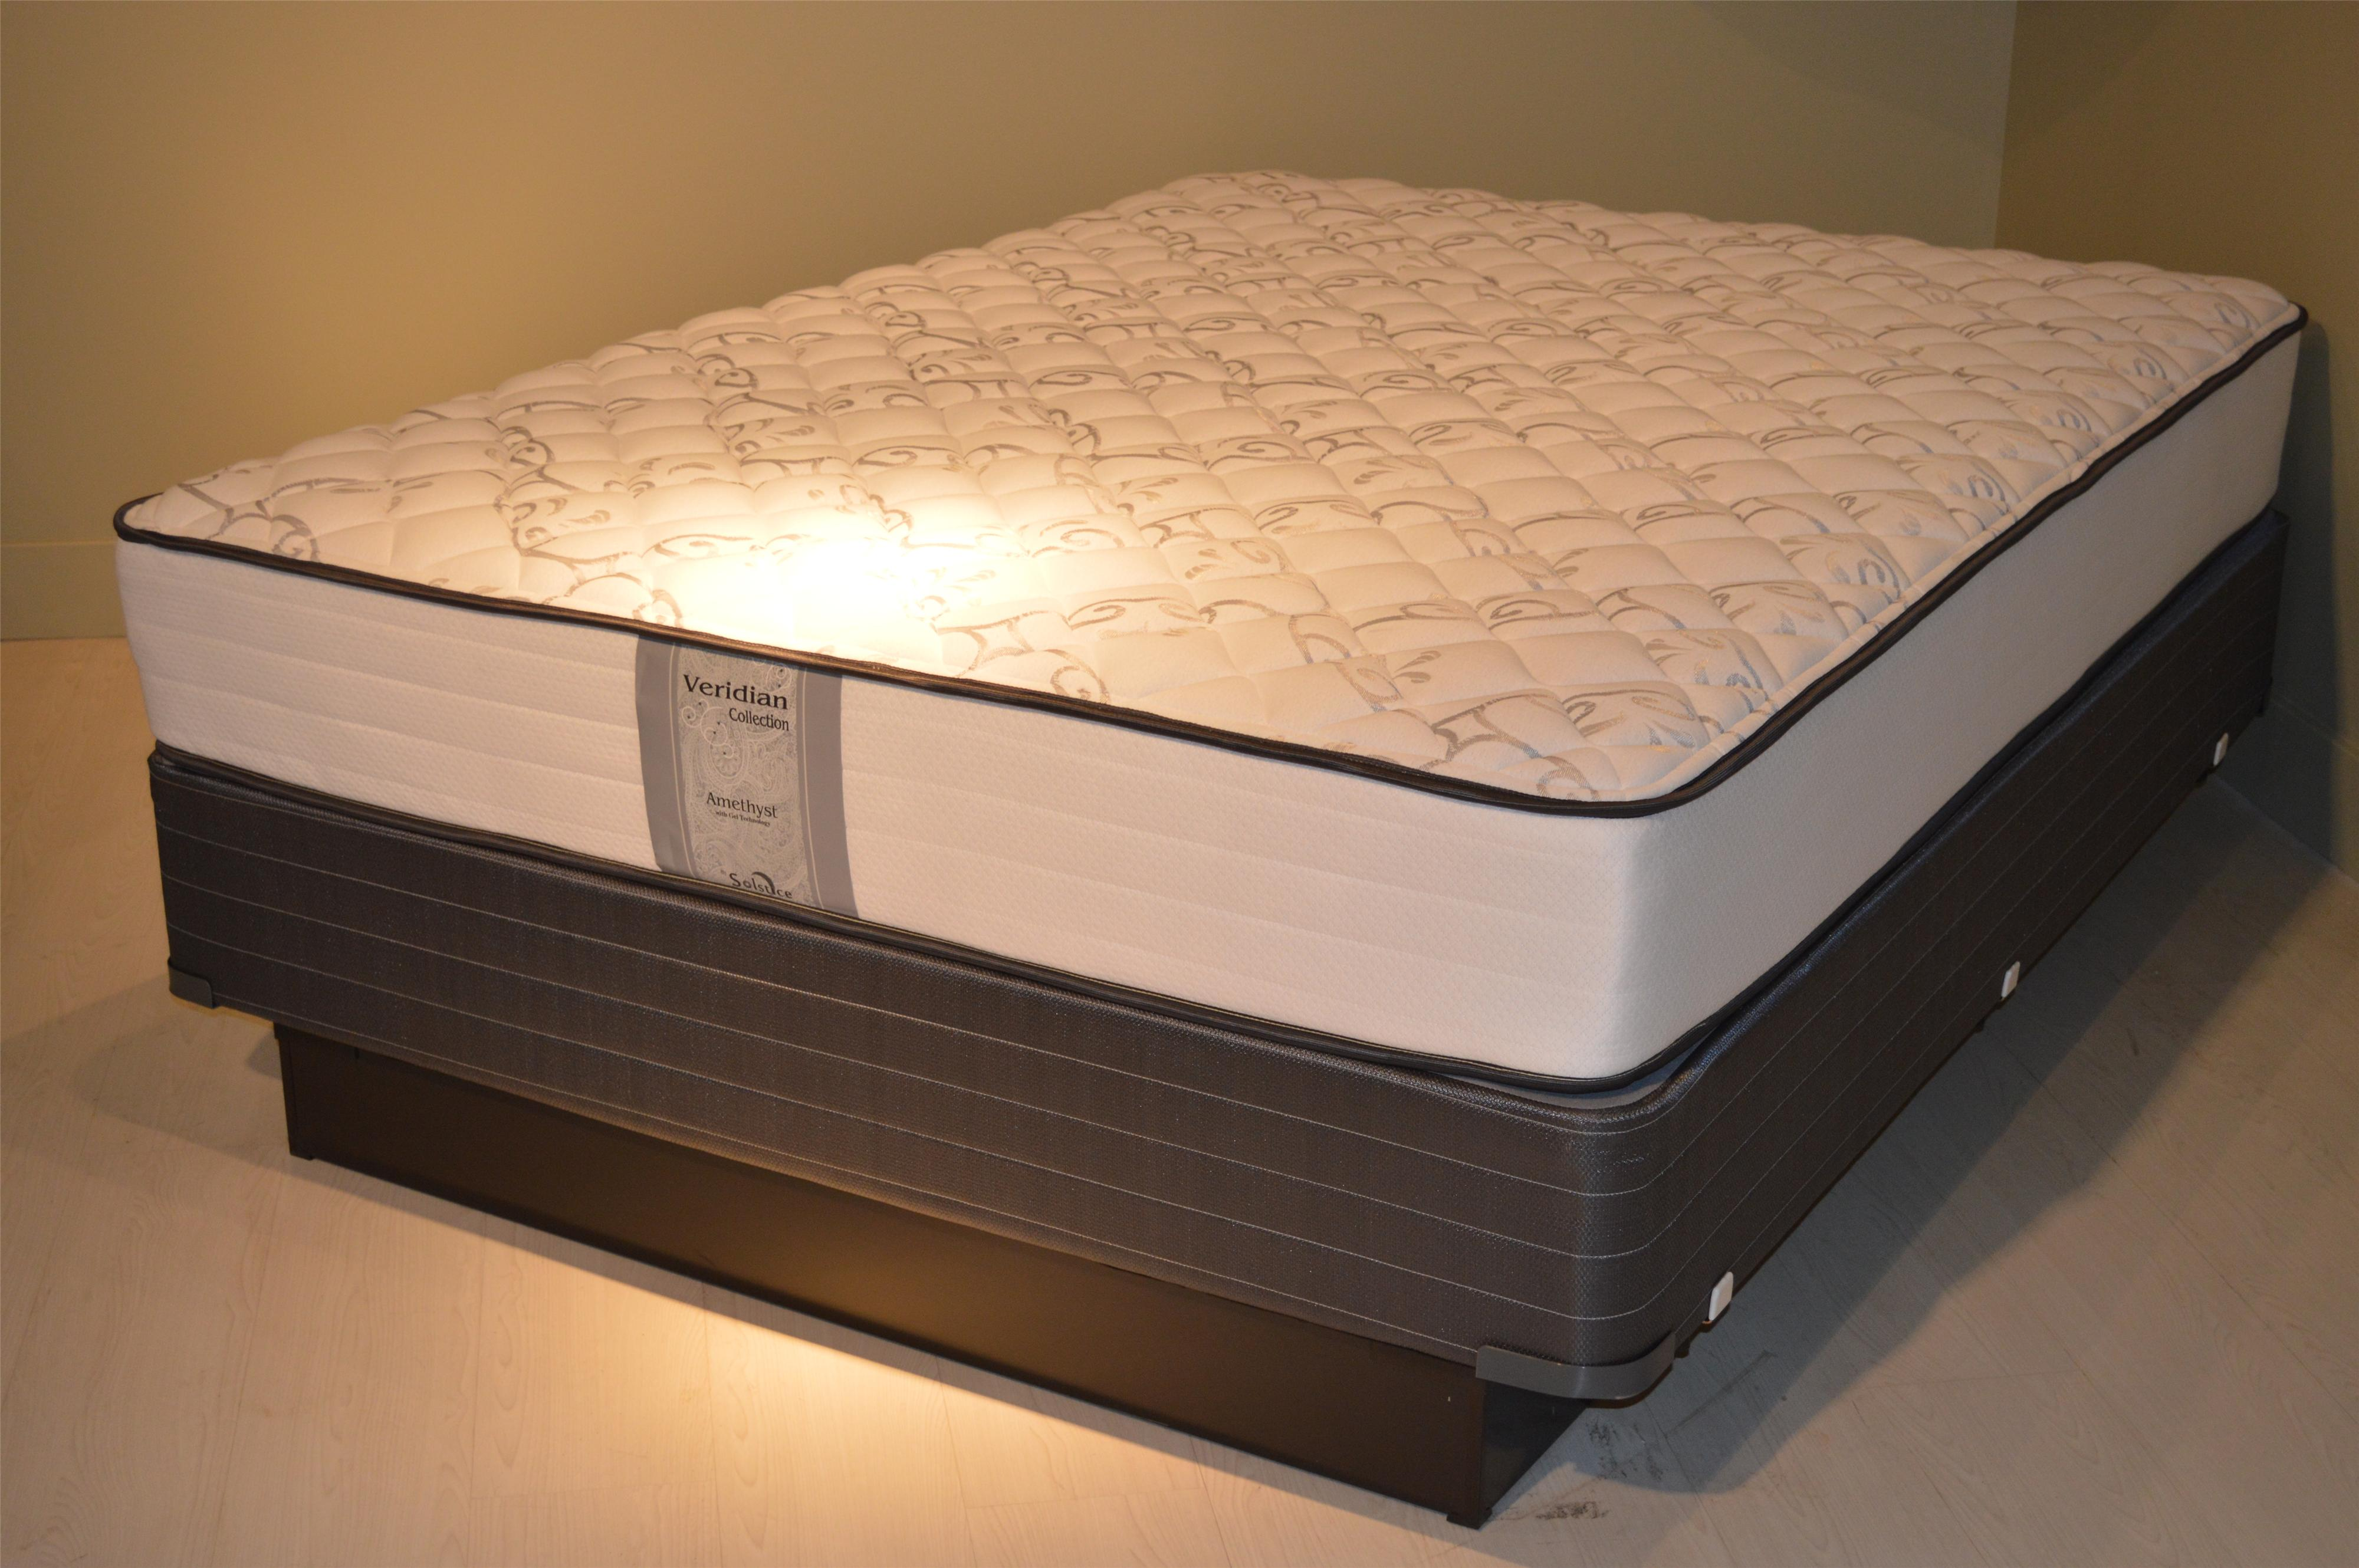 Amethyst Firm Amethyst Firm Mattress Set - CK by Solstice Sleep Products at Virginia Furniture Market